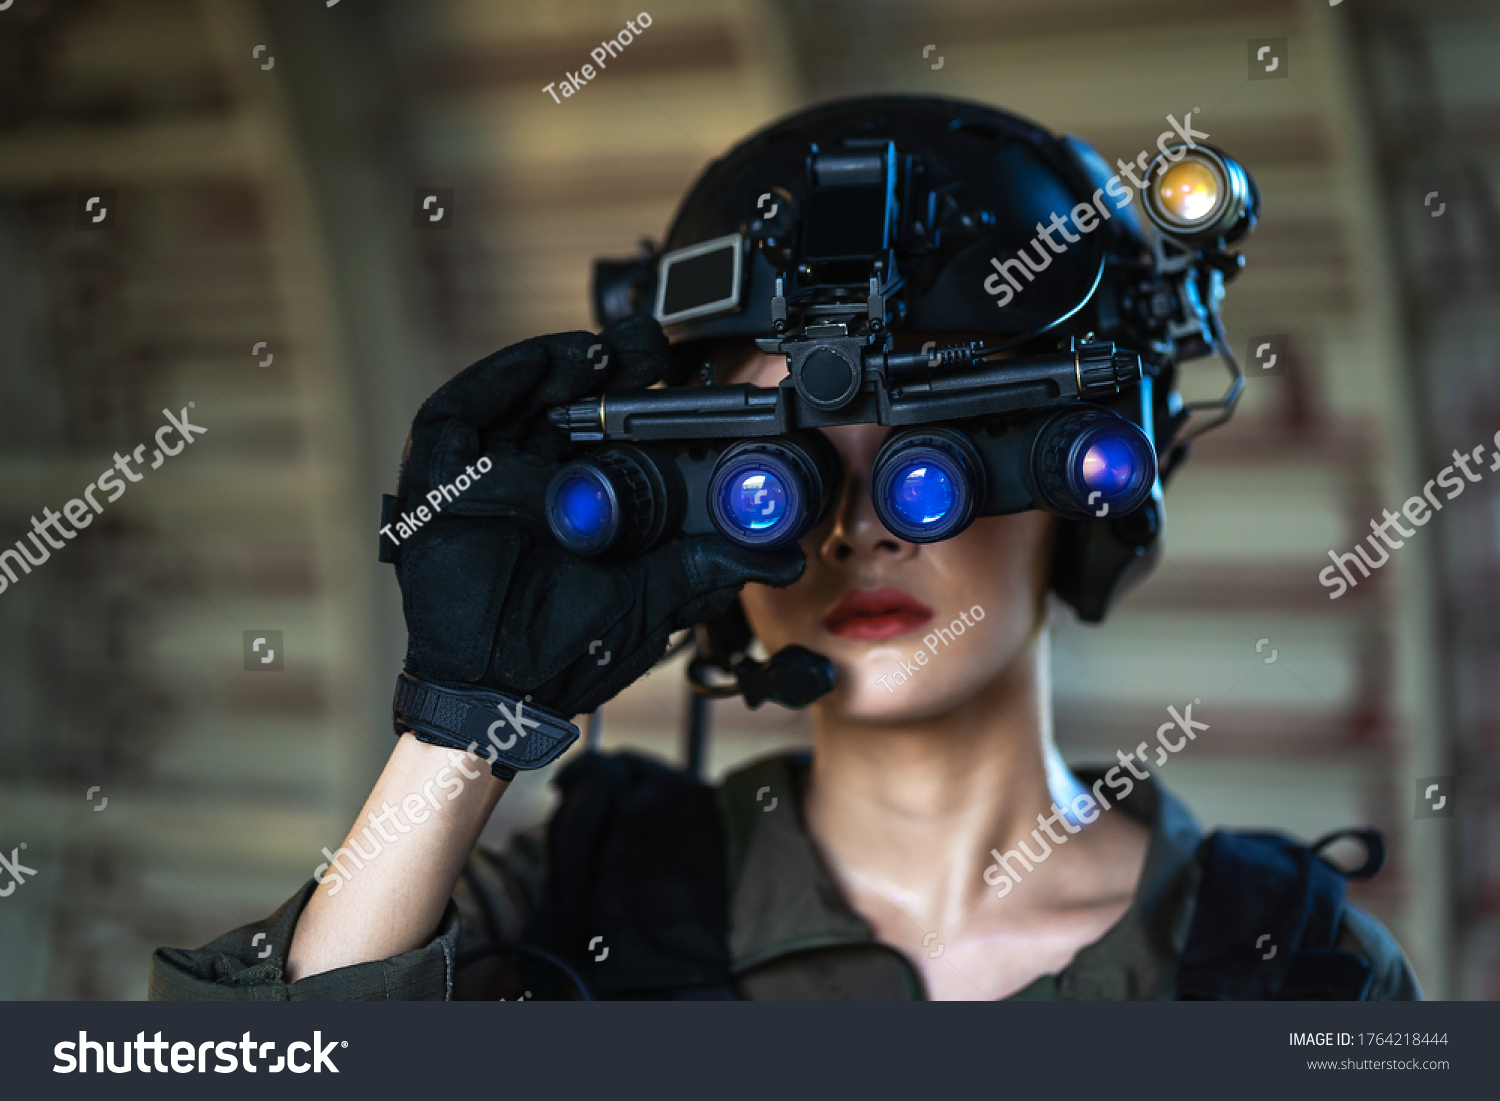 Portrait of female modern army special forces soldier, anti terrorist squad fighter, elite commando warrior using four-eyed night vision goggles in dark background #1764218444